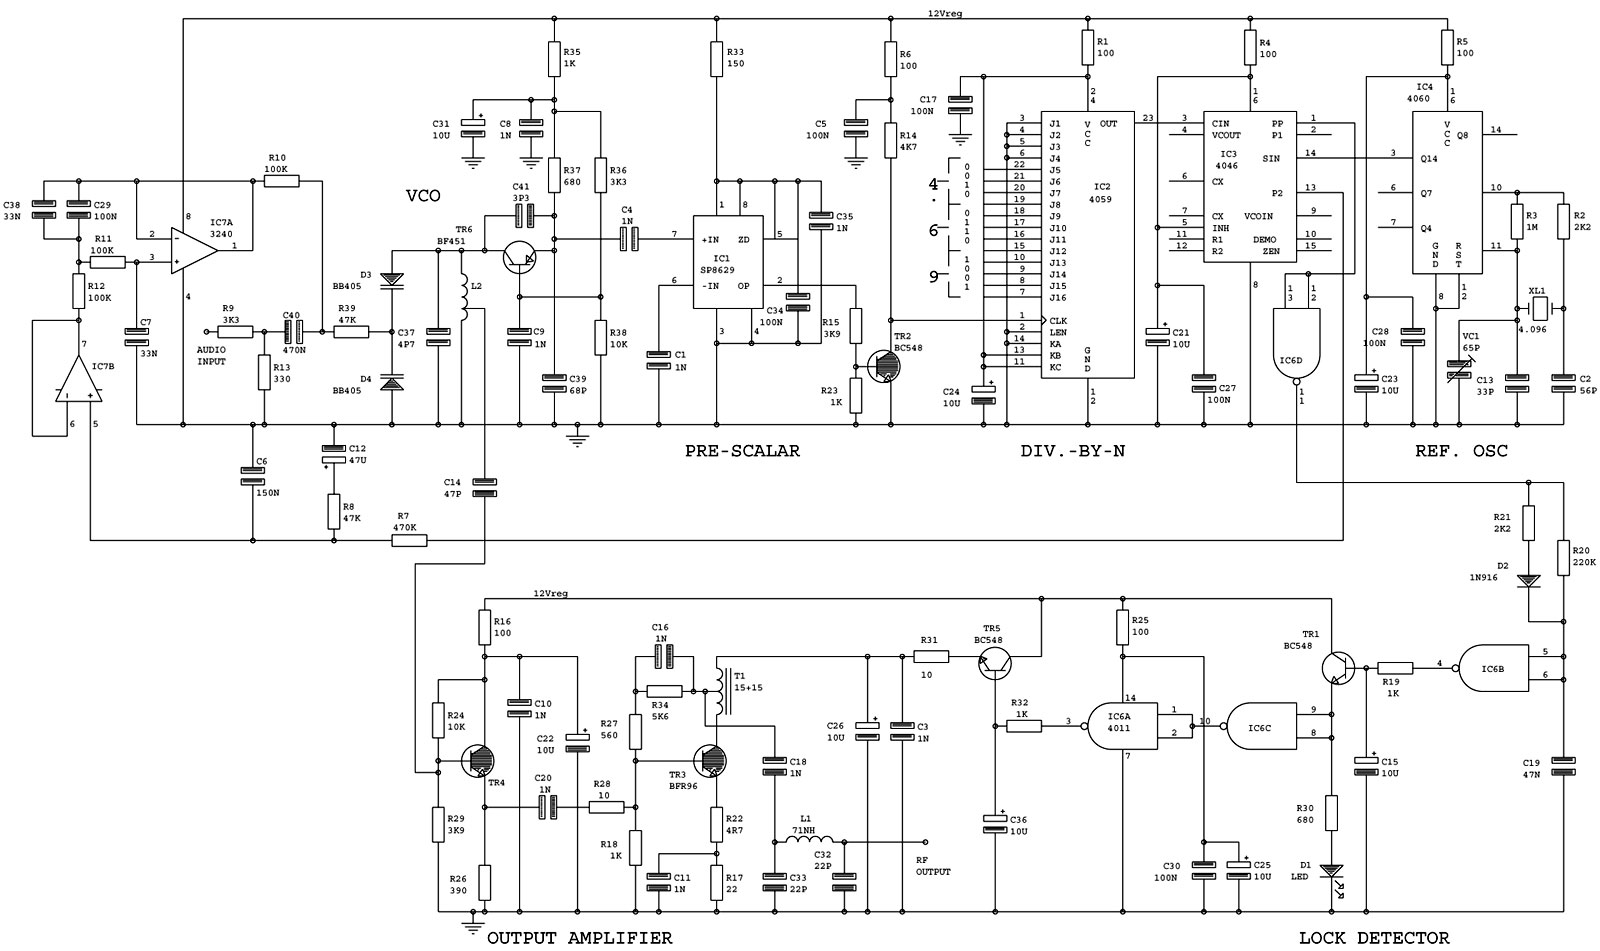 Circuit Diagrams and Schematics for FM, MW and SW transmitters and audio